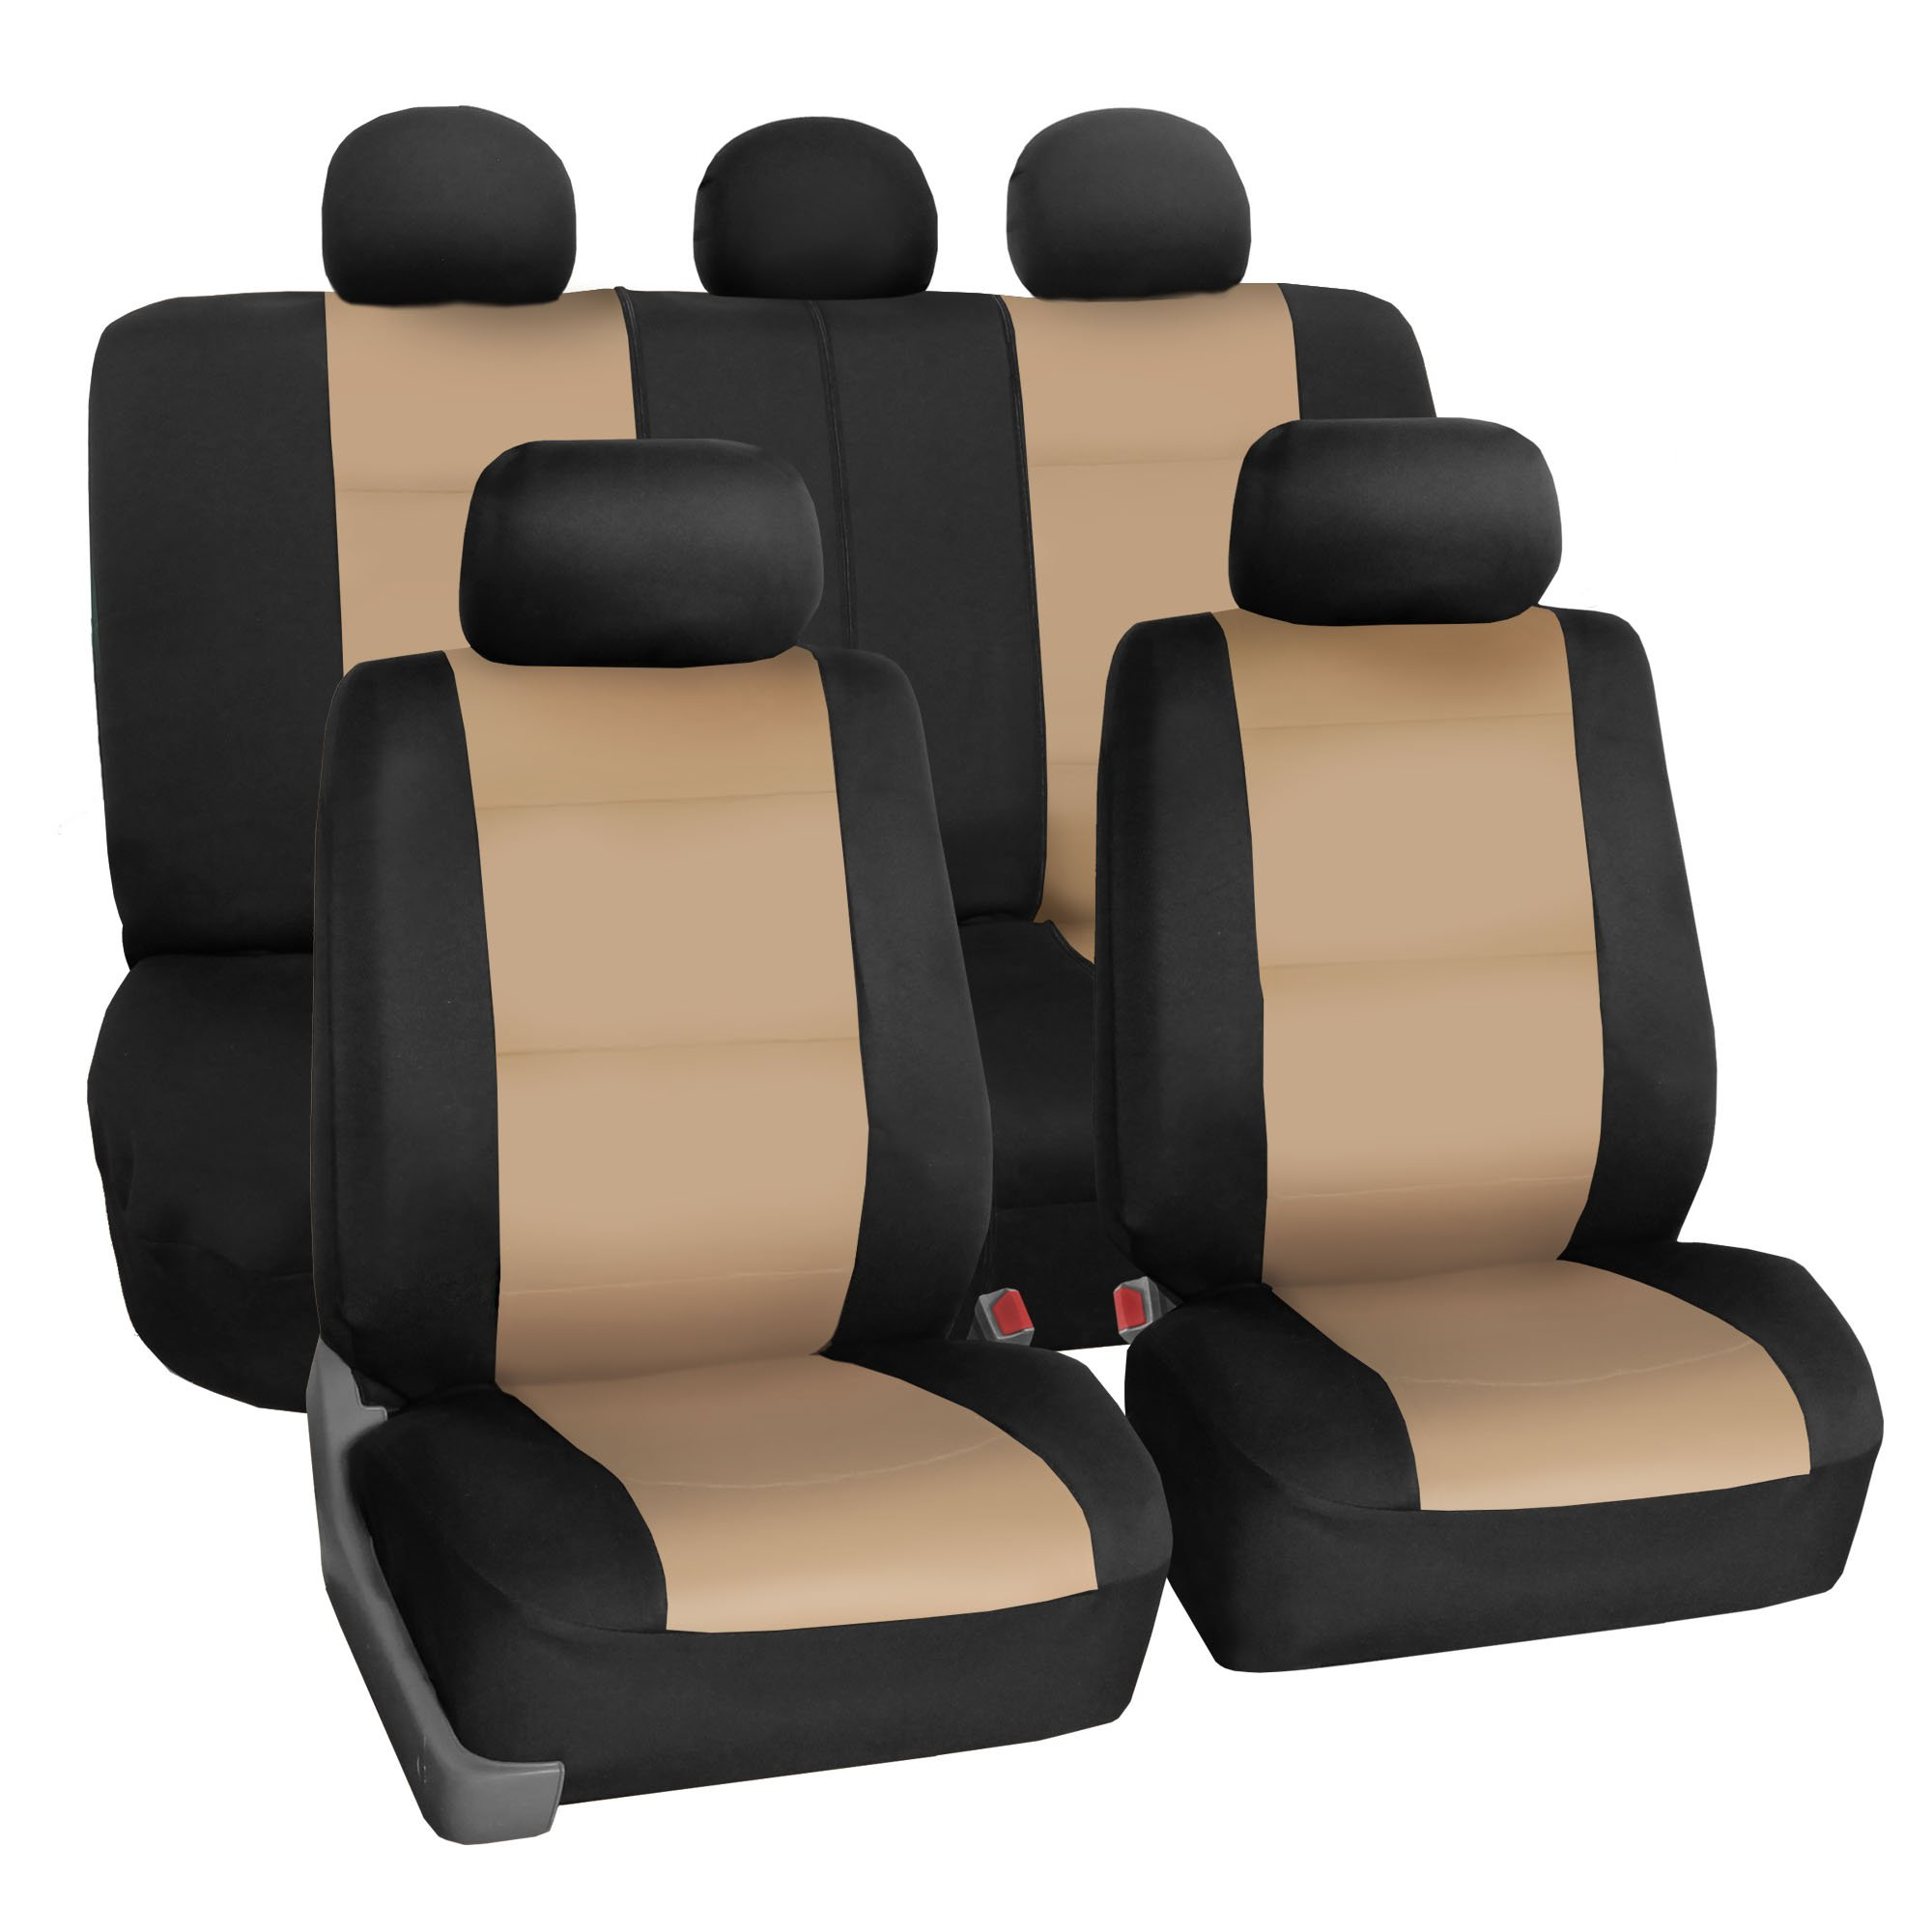 FH Group FB083BEIGE115 Full Set Neoprene Seat Cover Semi-Universal (Neoprene Waterproof Airbag Compatible Split Bench Beige) by FH Group